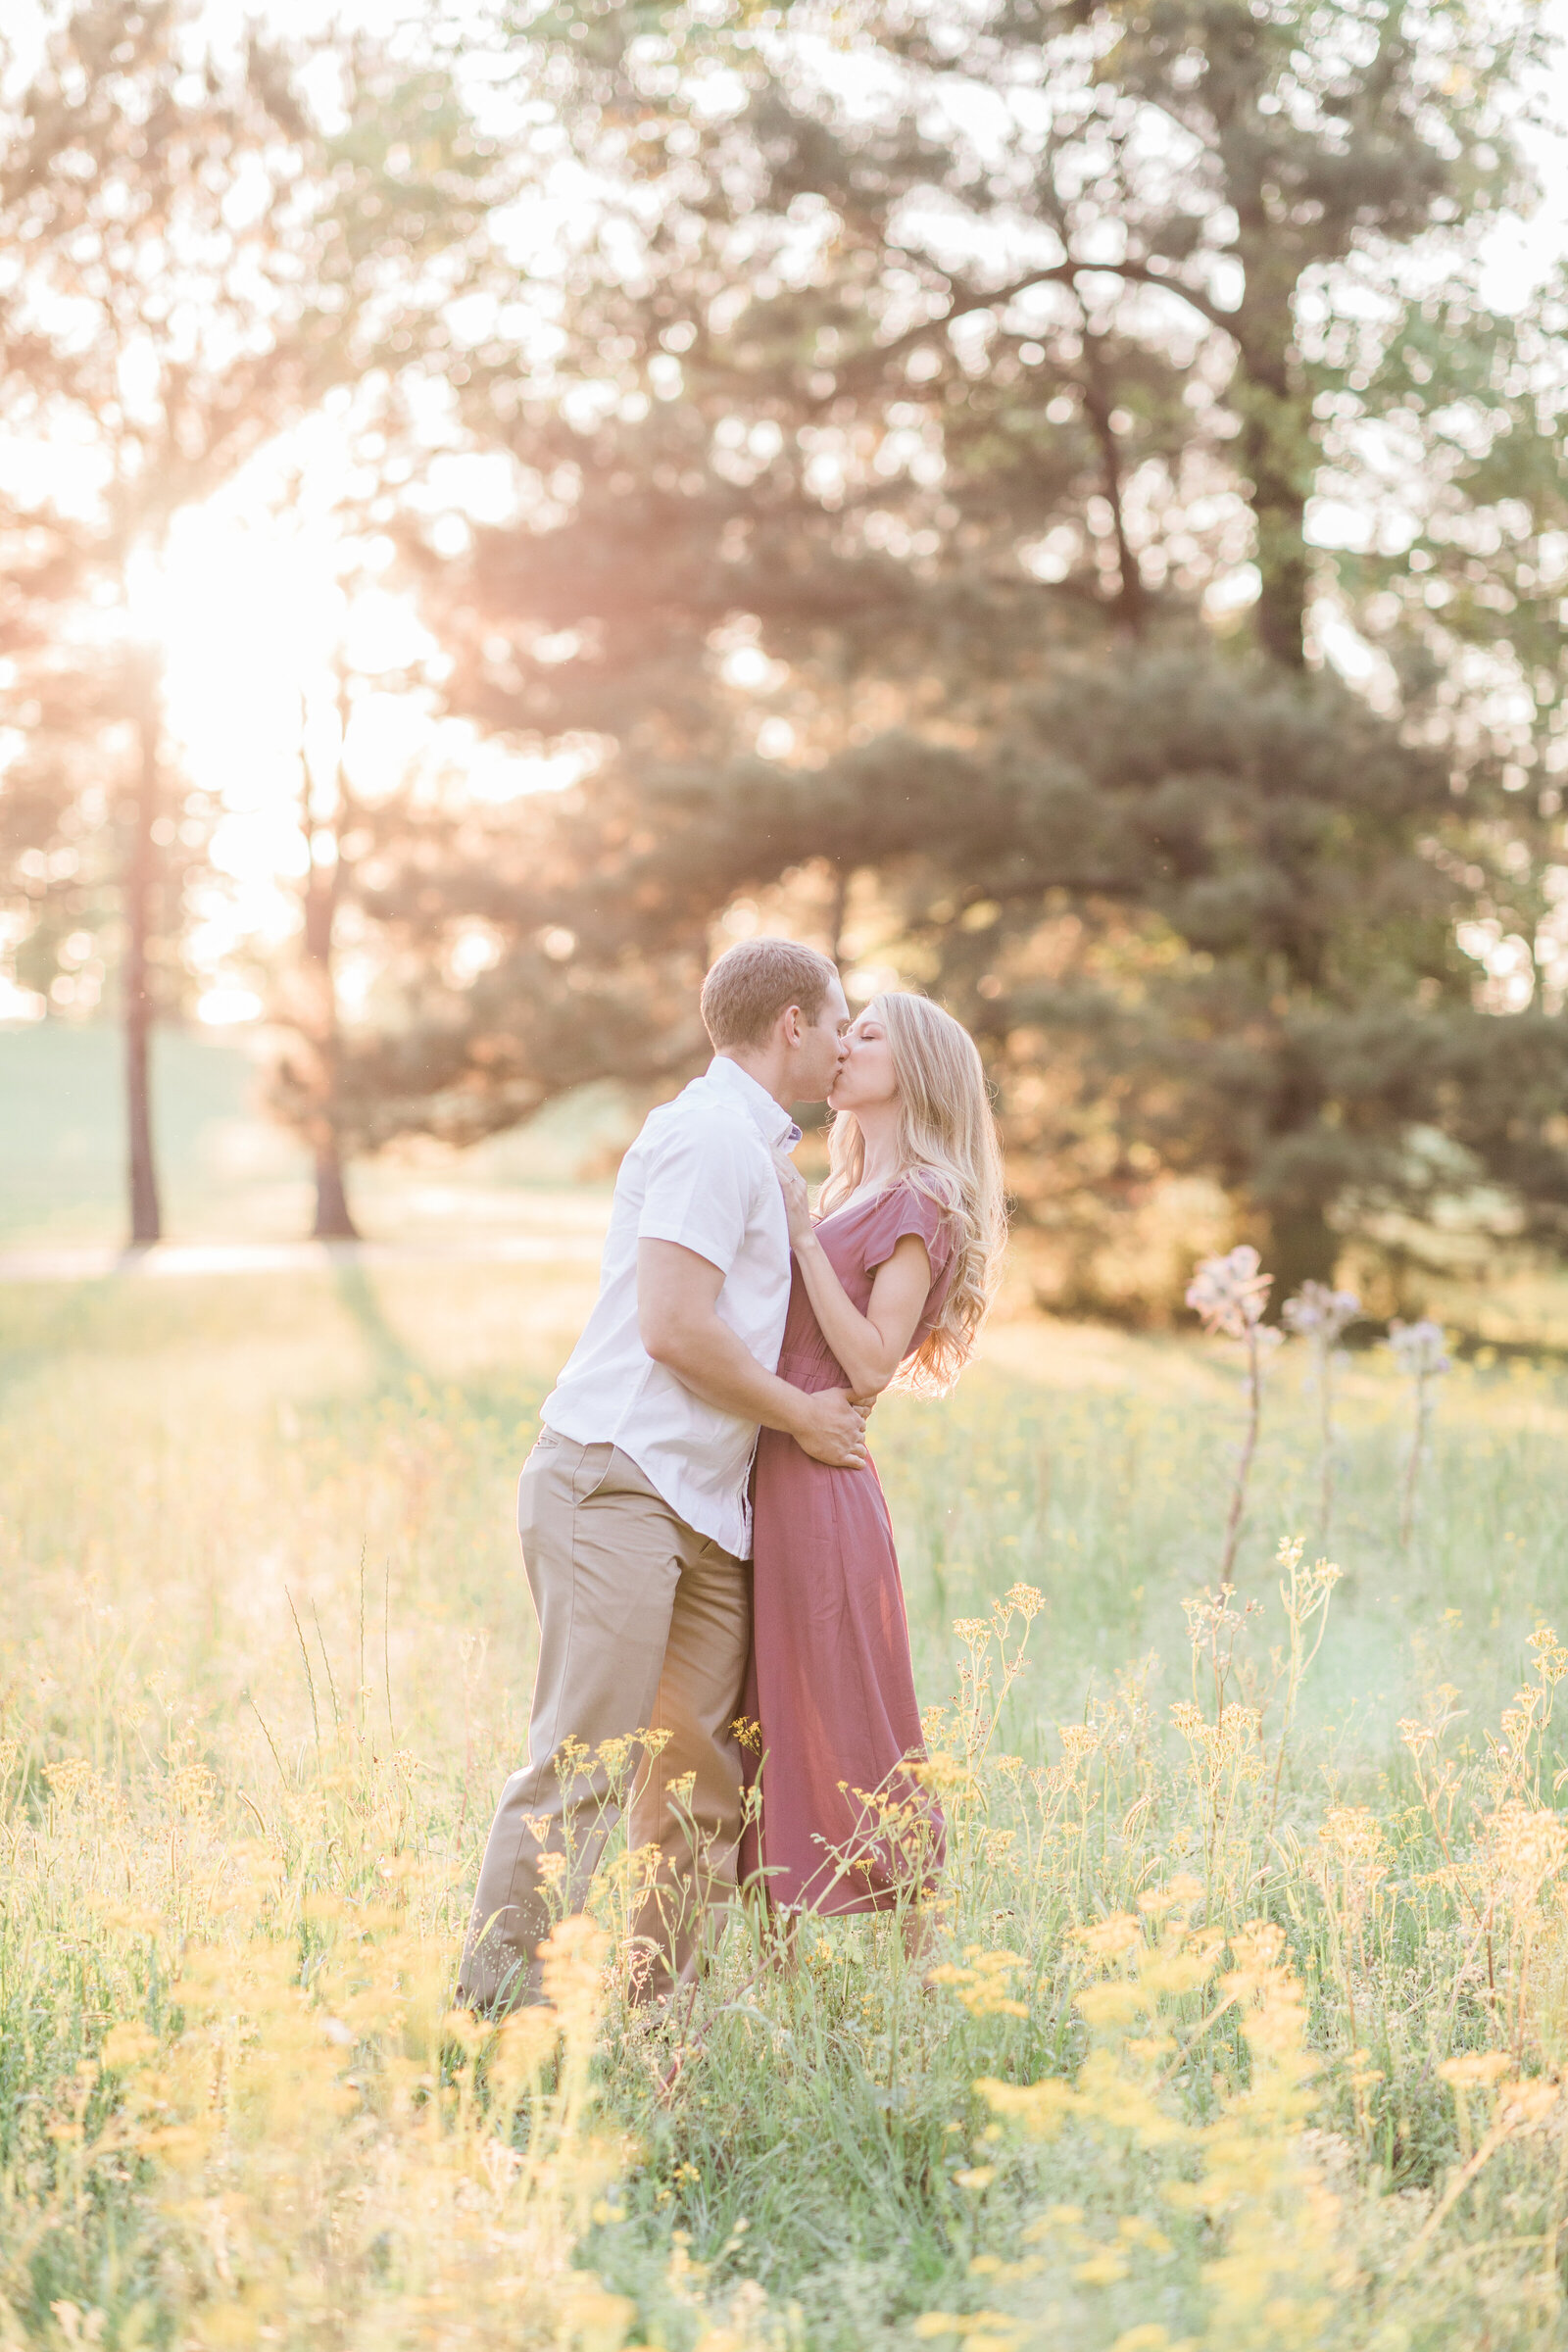 Sunlit Engaged Couple in East Texas